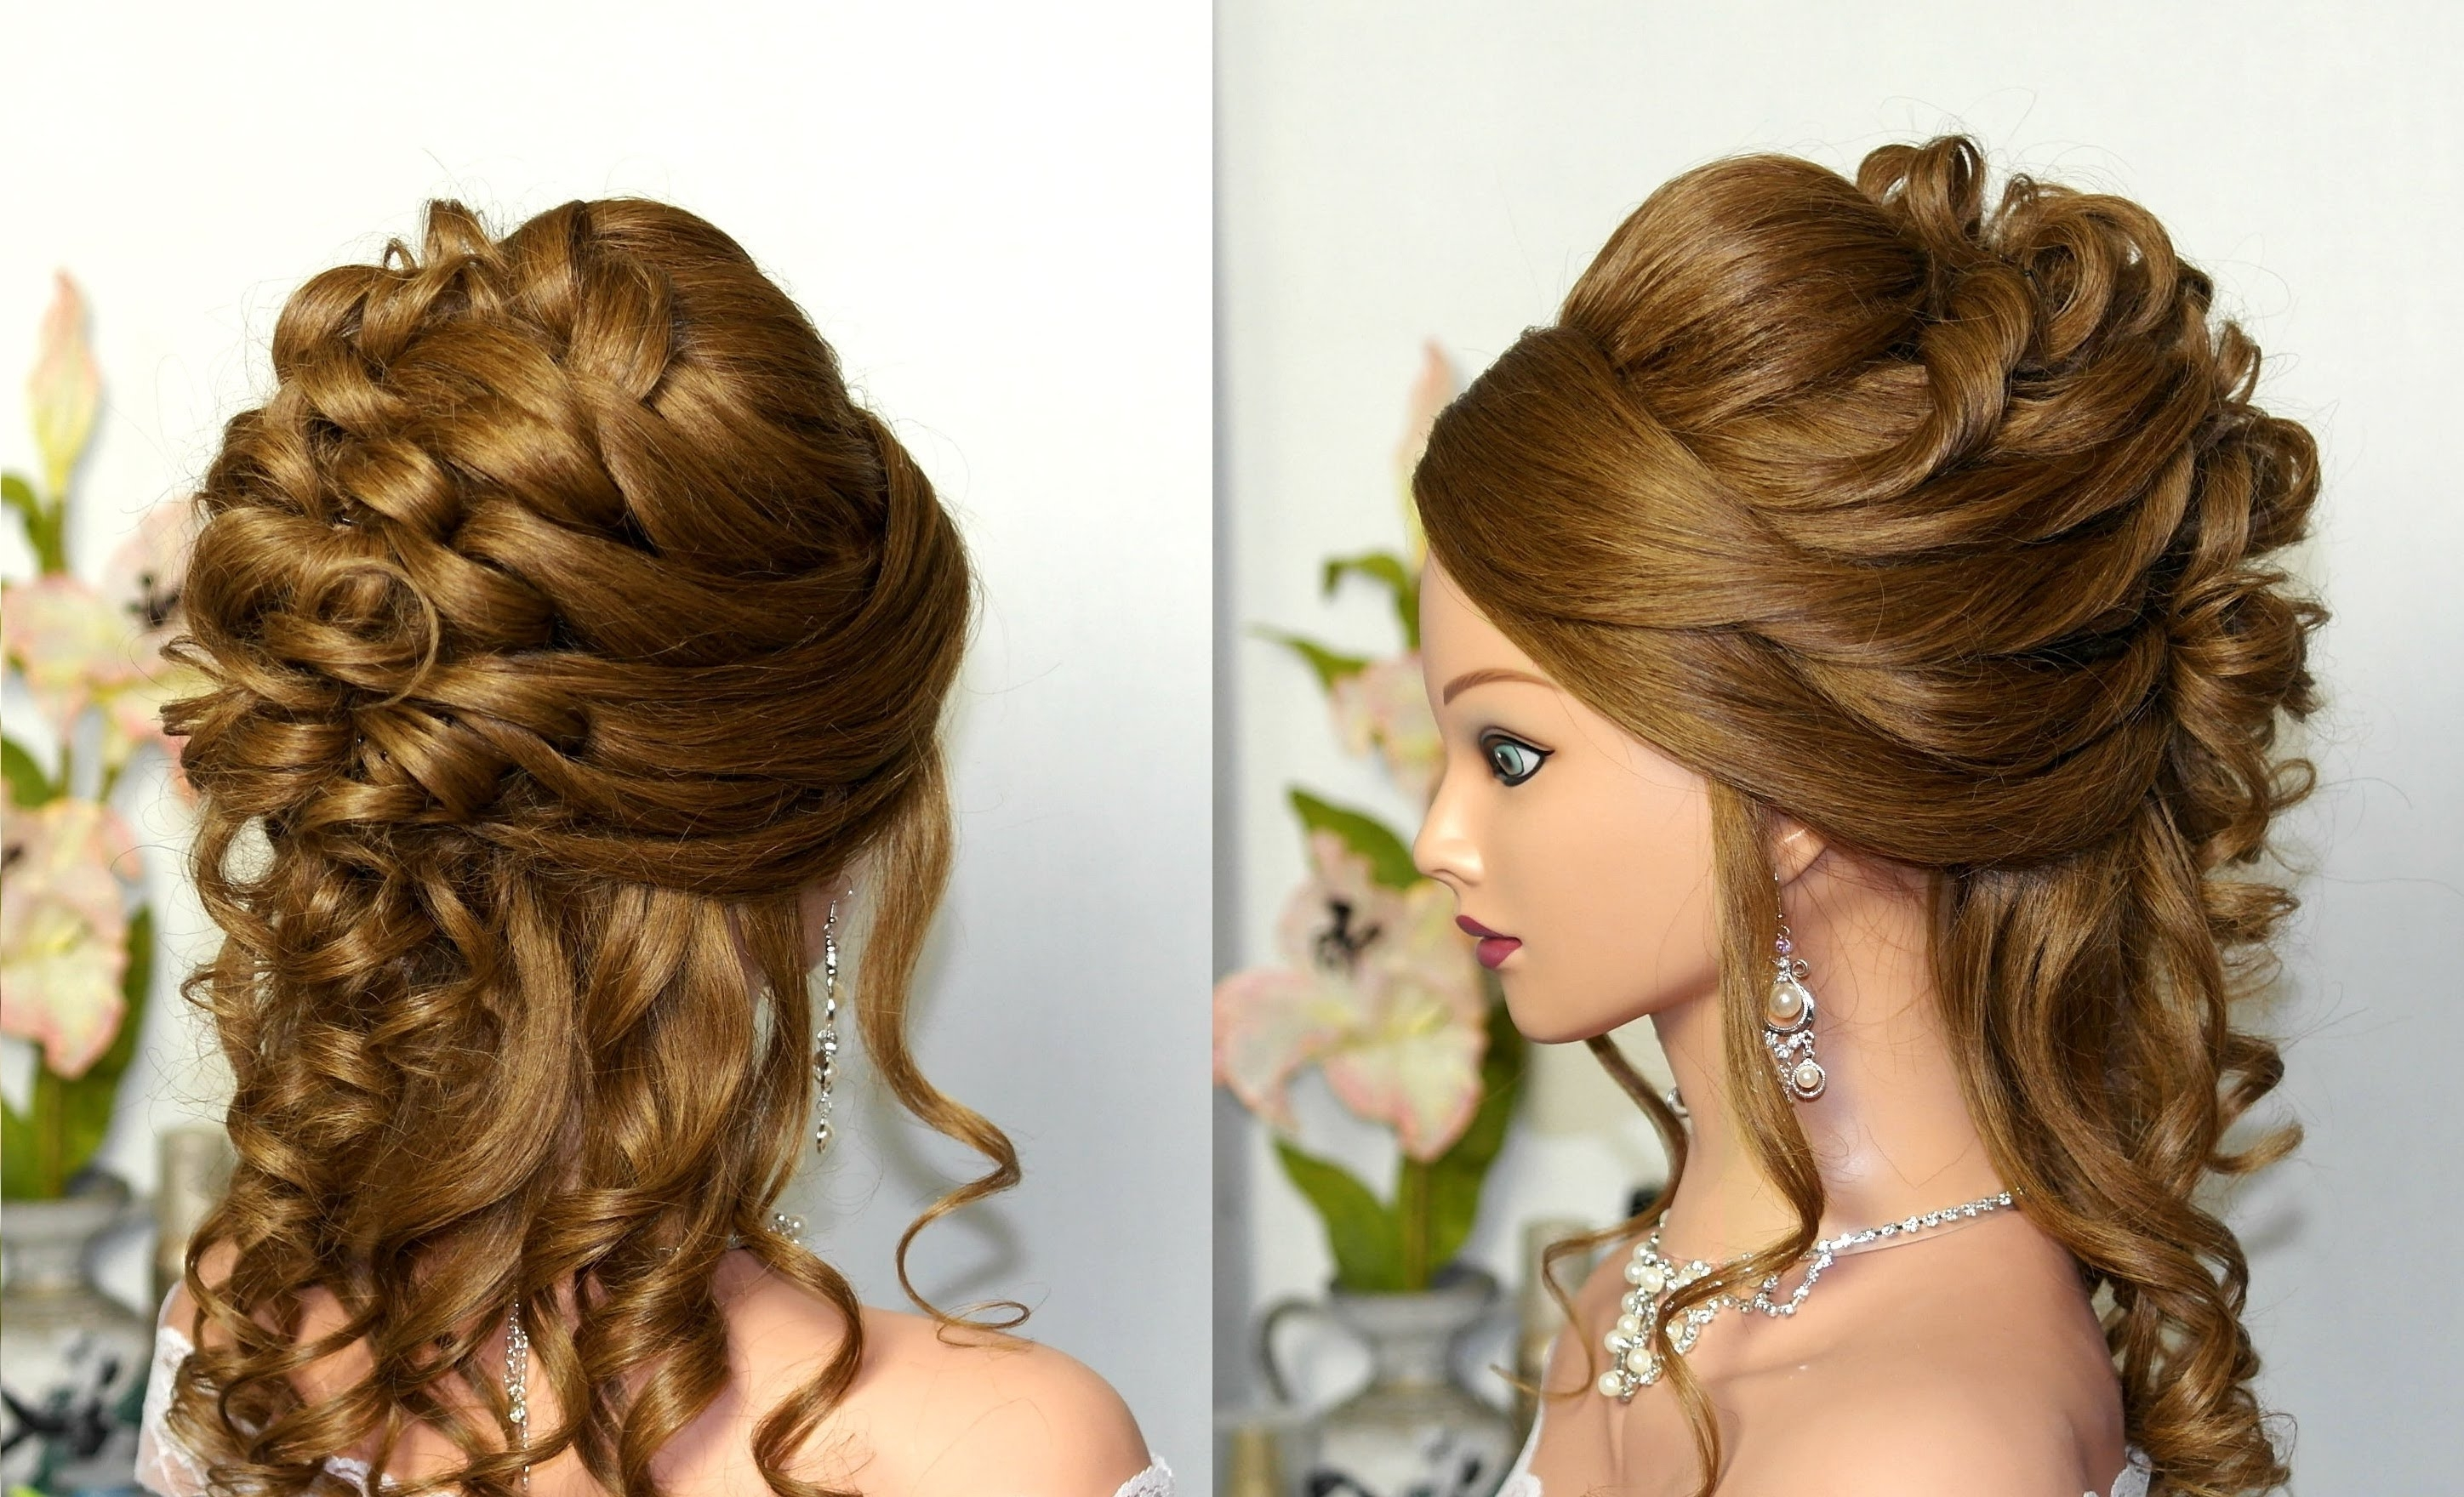 Newest Wedding Hairstyles For Long Curly Hair Pertaining To Curly Wedding Prom Hairstyle For Long Hair (View 15 of 15)